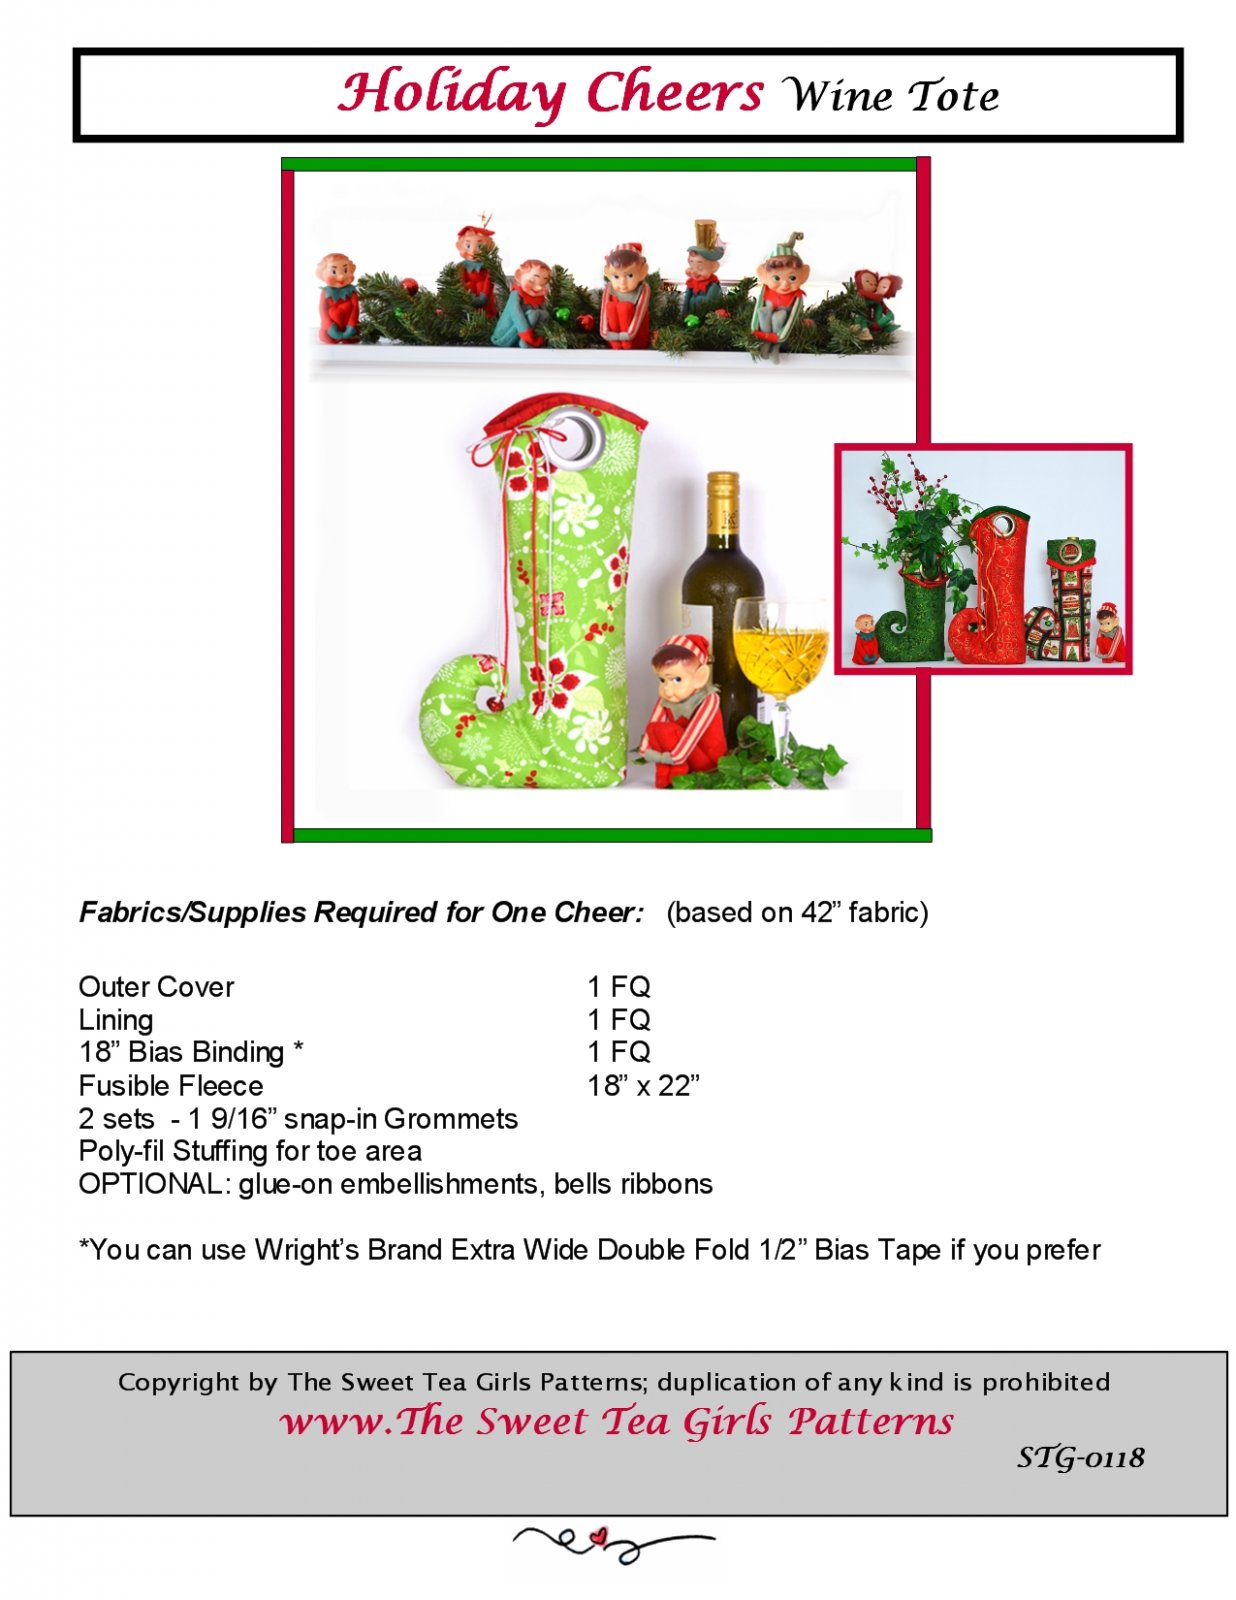 Holiday Cheers - Downloadable PDF